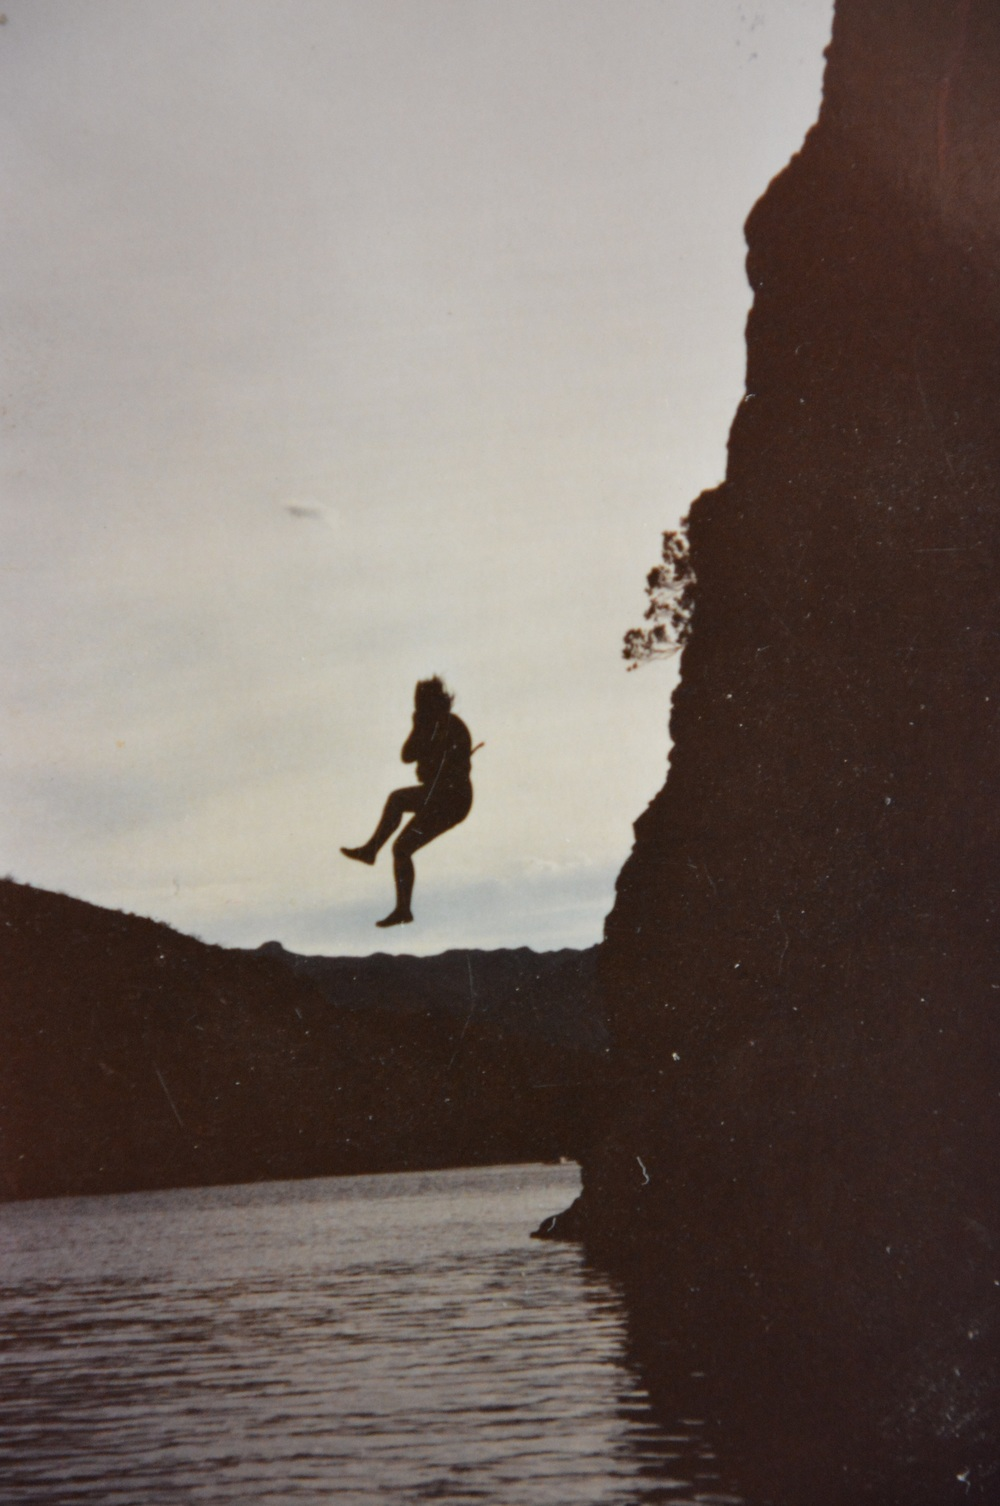 The author's sister Jan as she jumps into a lake by the Colorado River.